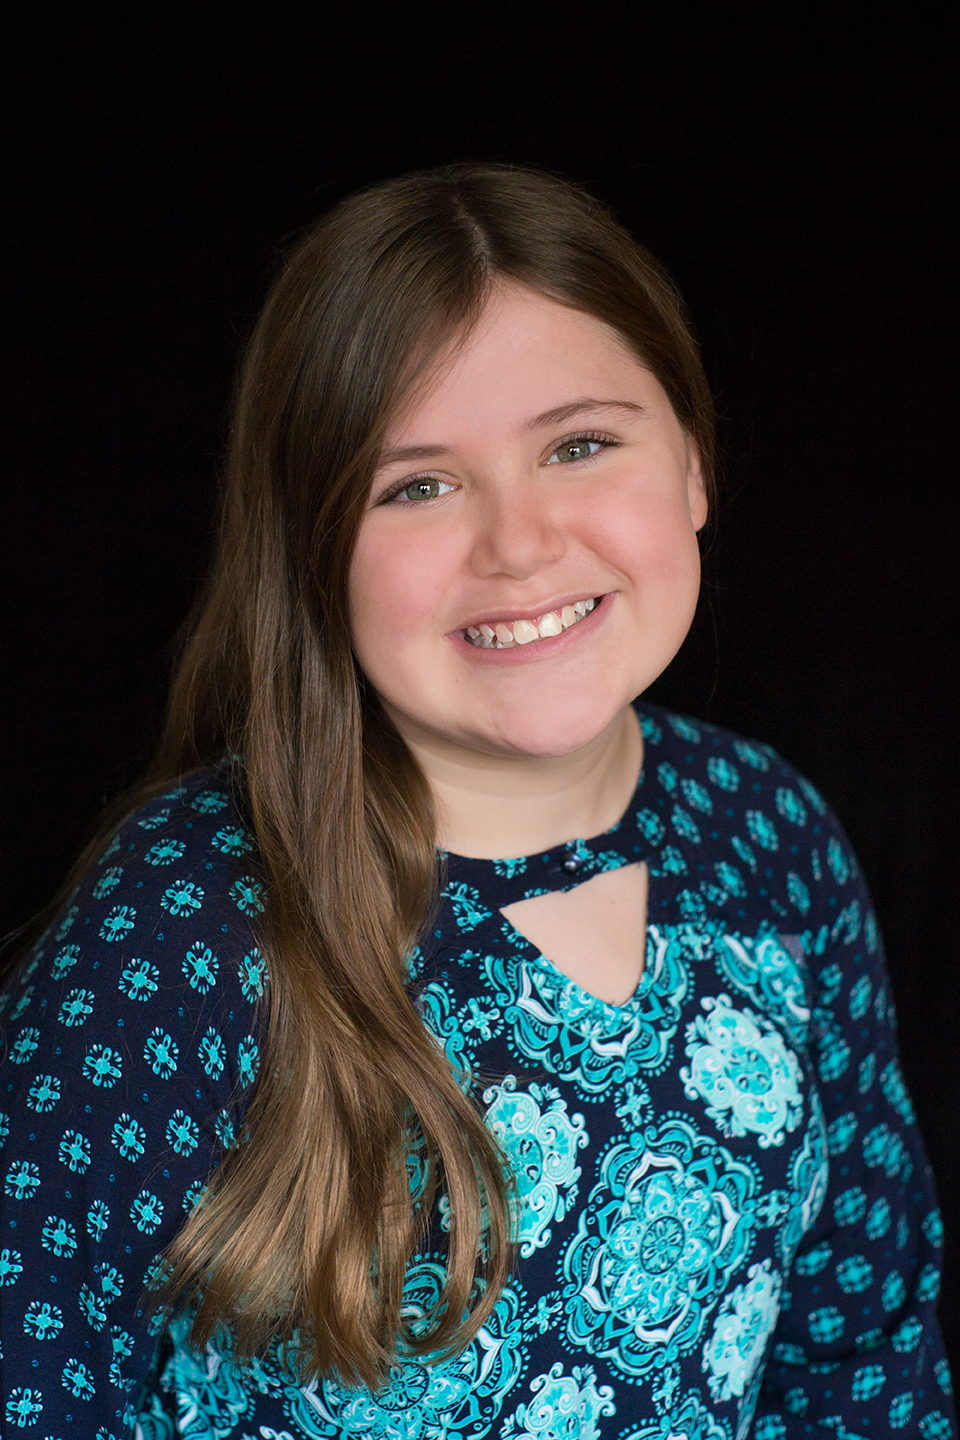 School Photography Berks County PA